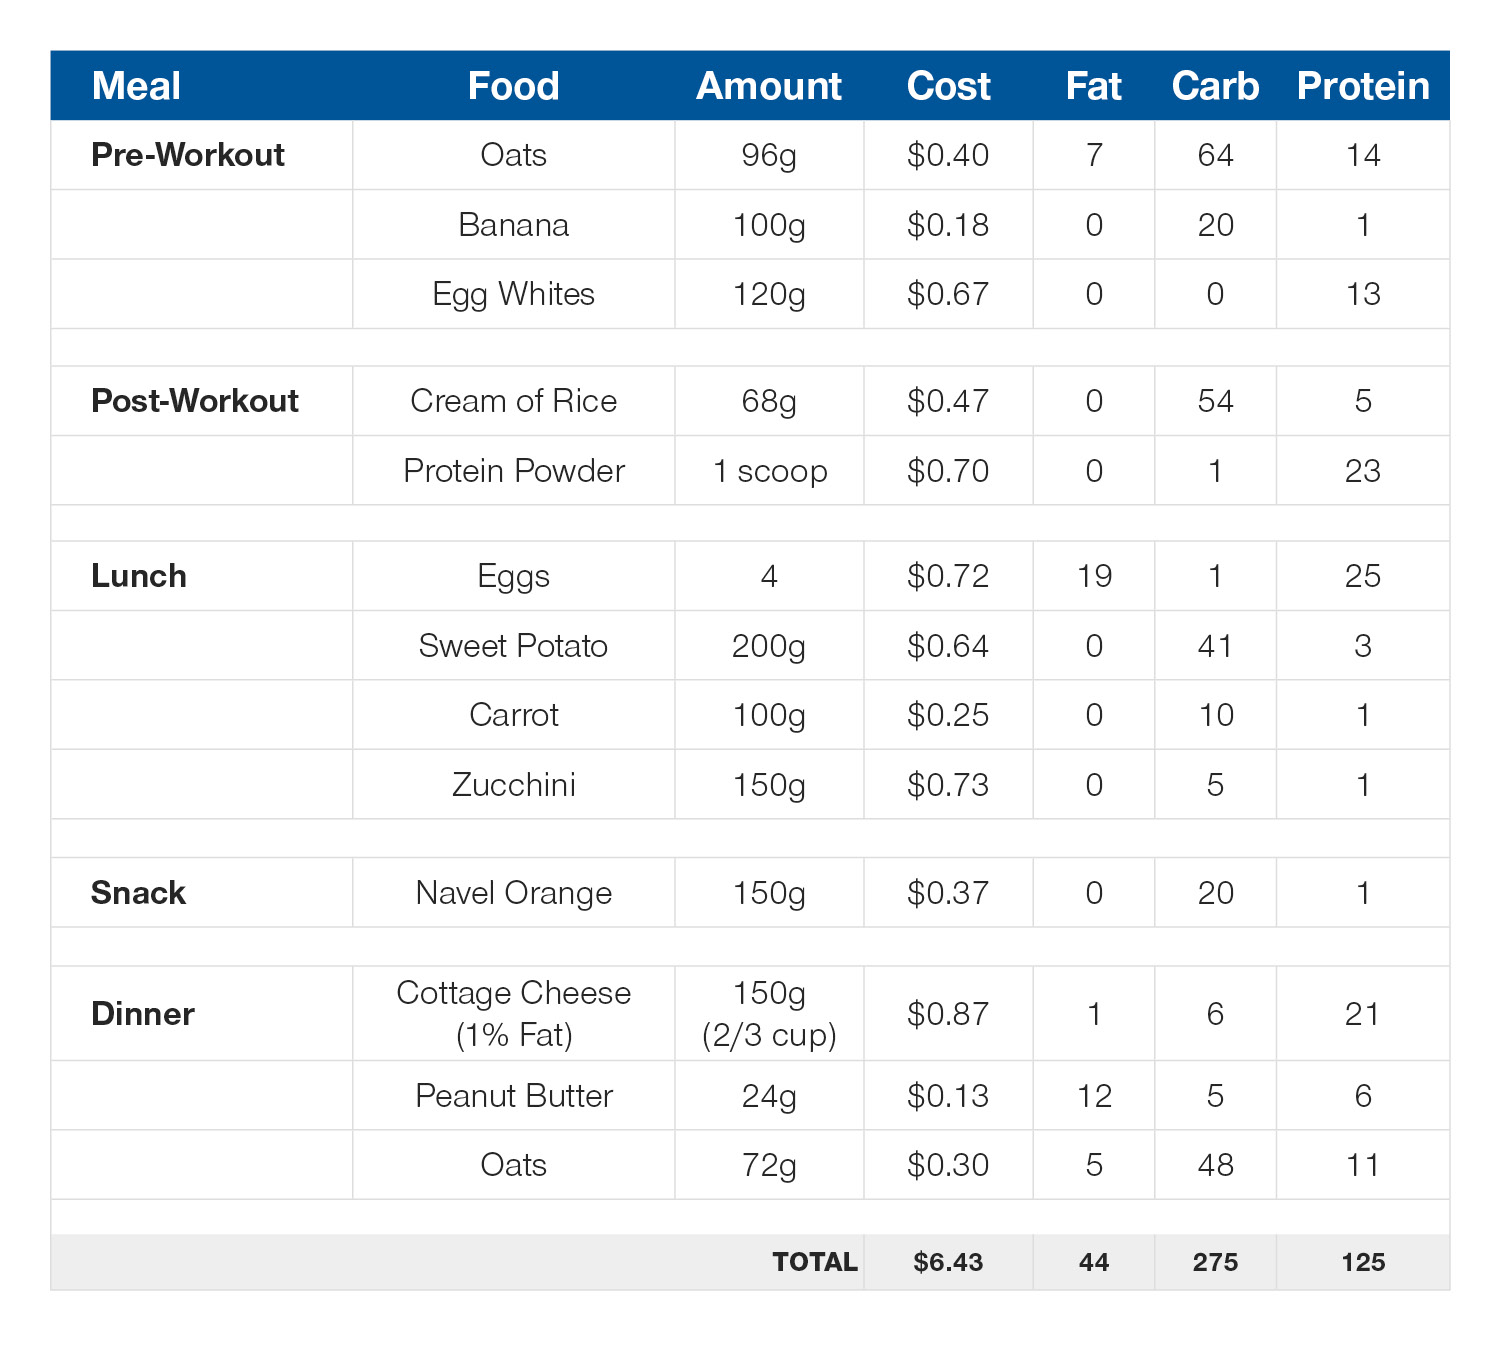 Daily meal plan: 125g protein, 45g fat, 275g carb